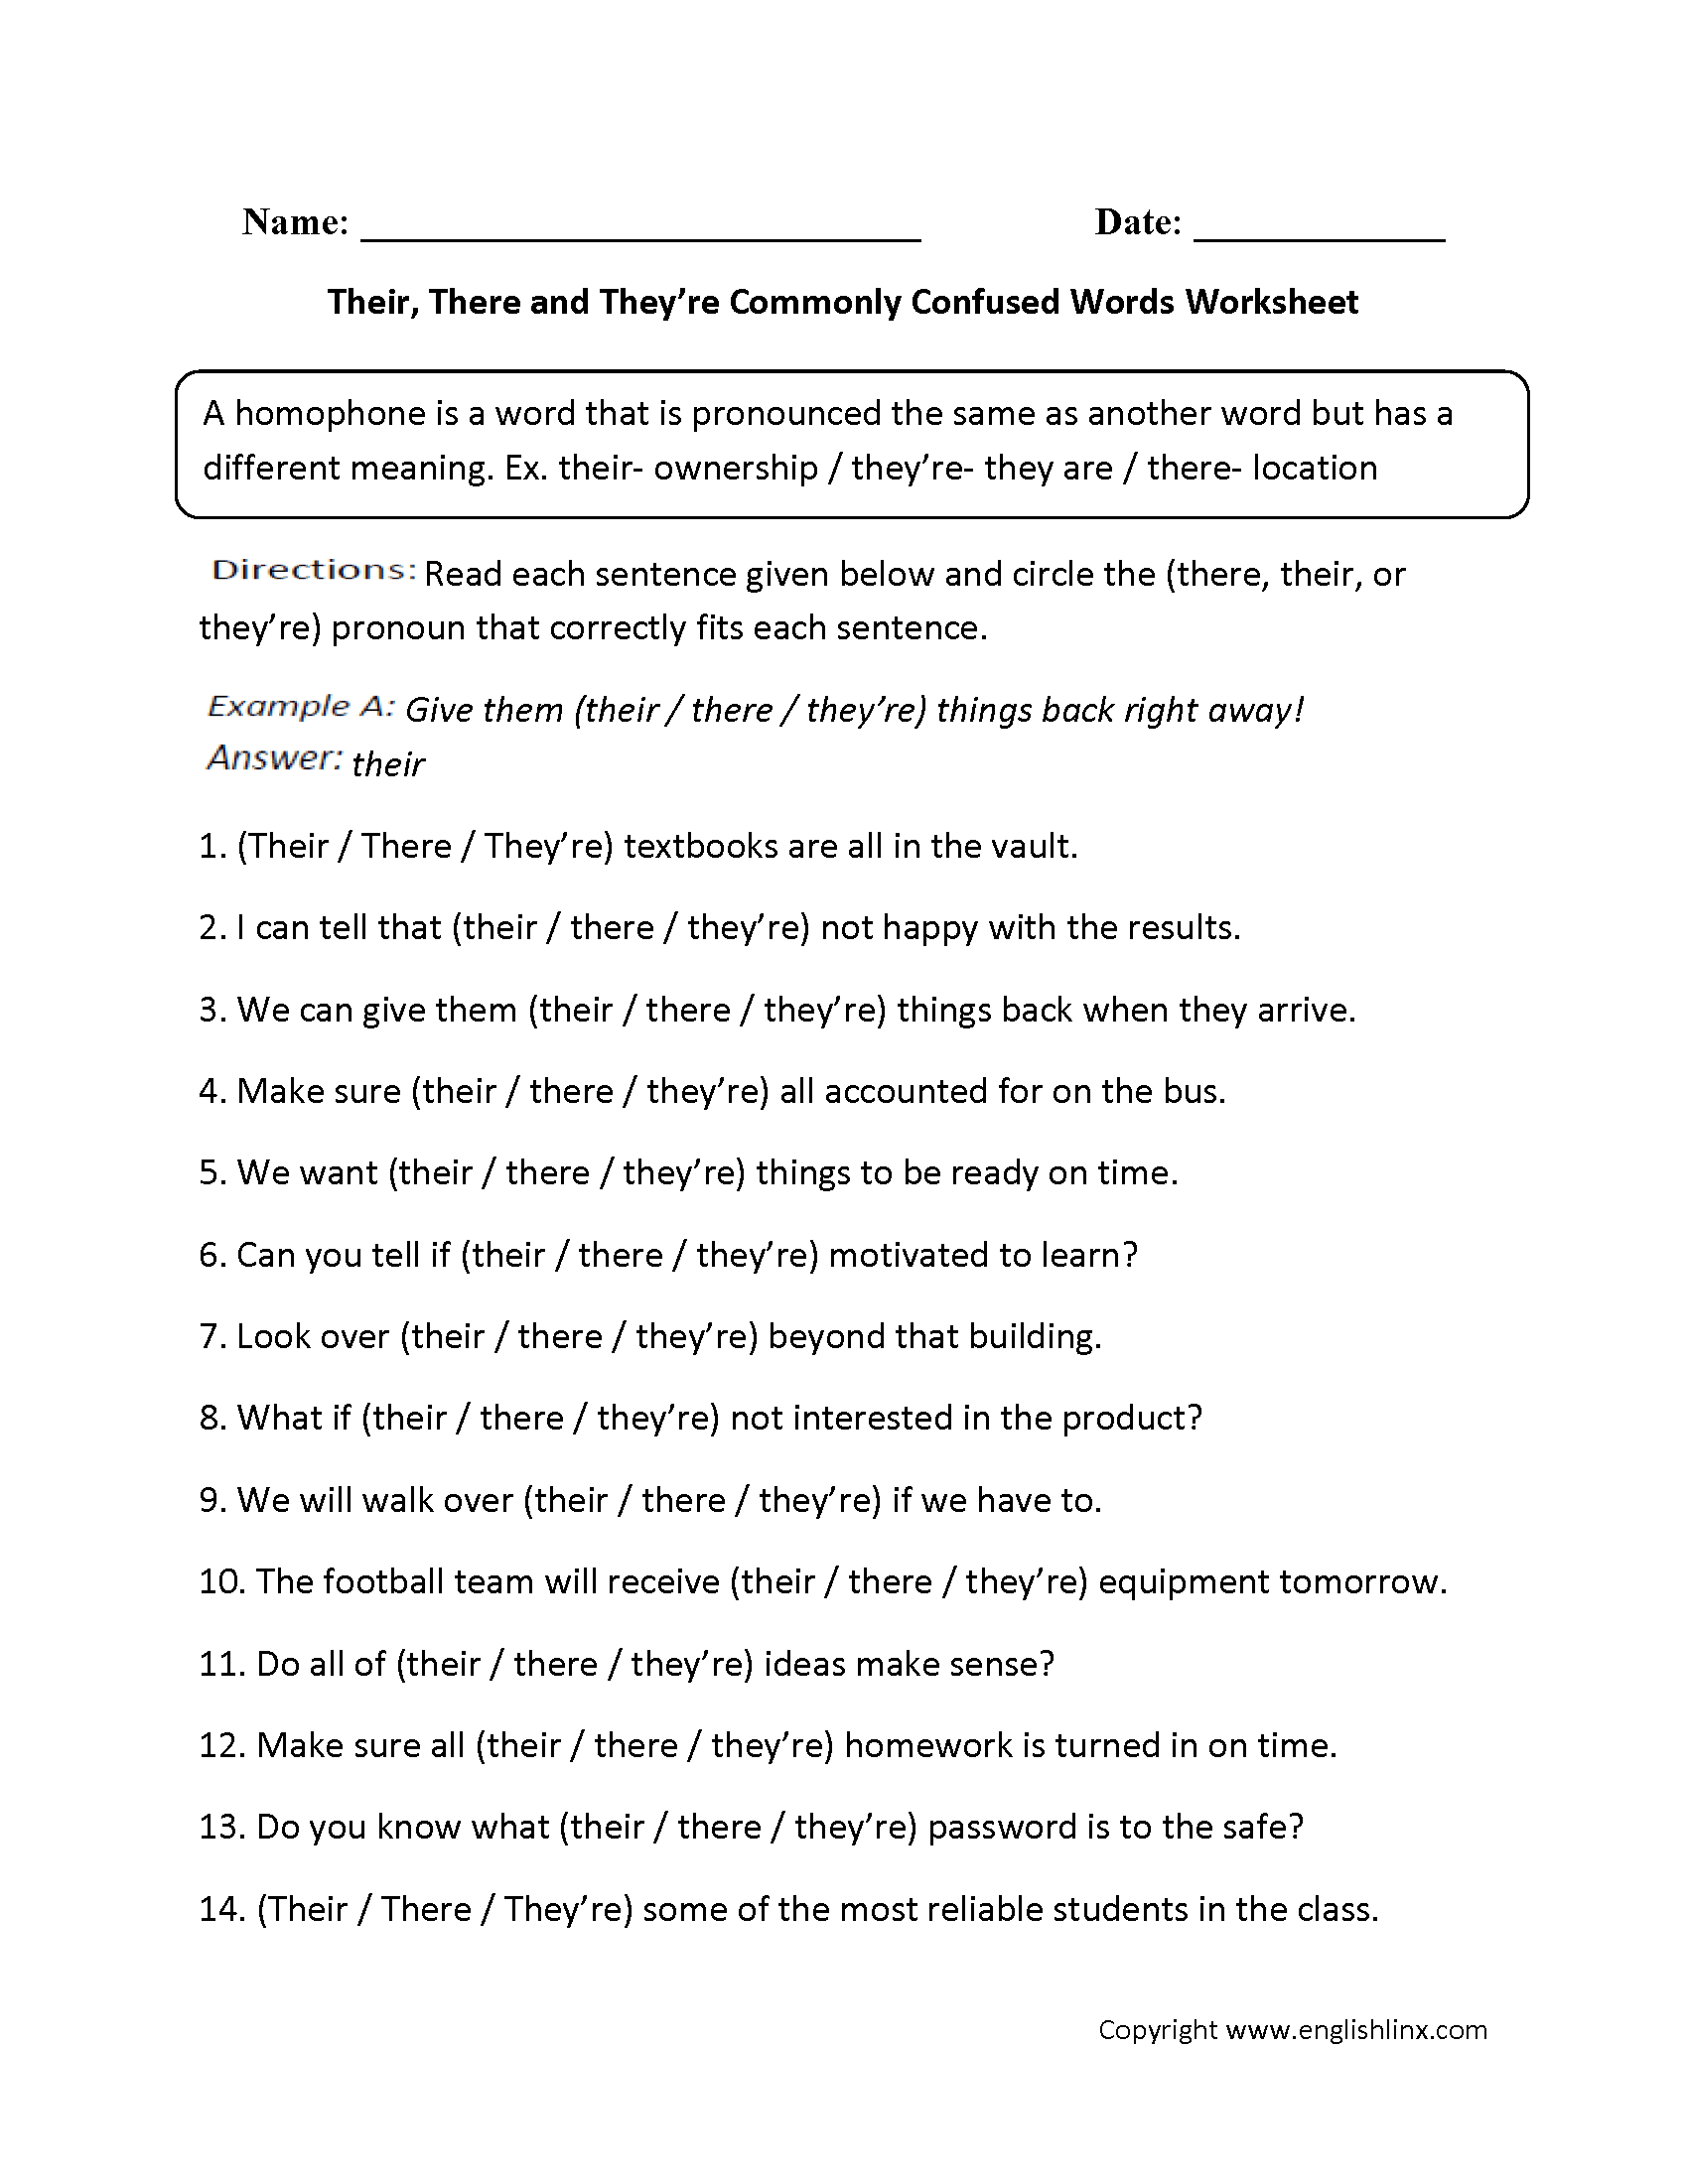 Word usage worksheets commonly confused words worksheets commonly confused words worksheets ibookread PDF